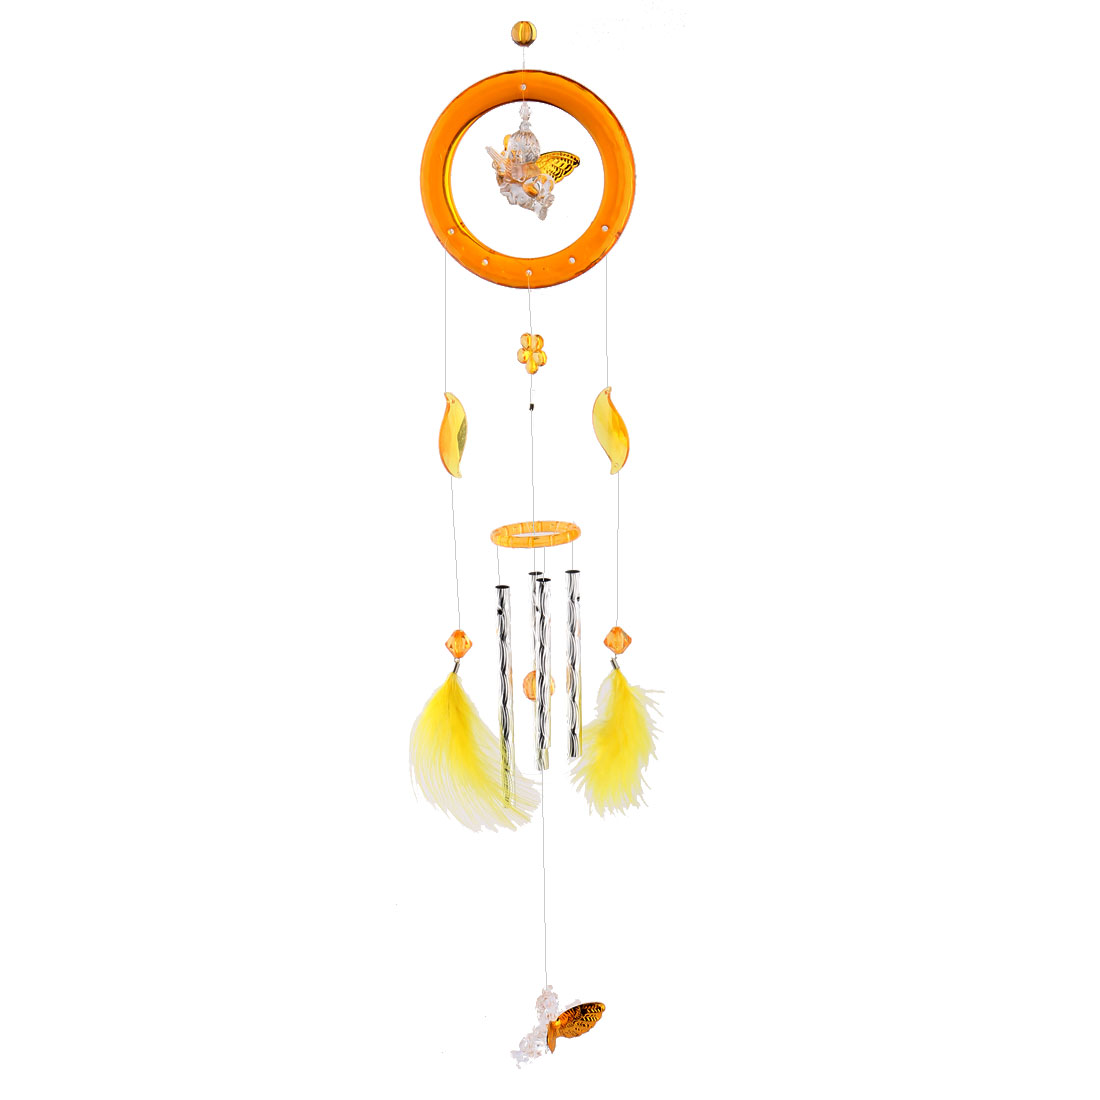 Bedroom Plastic Birthday Gift 4 Tubes Angels Hanging Wind Bell Chime Windbell